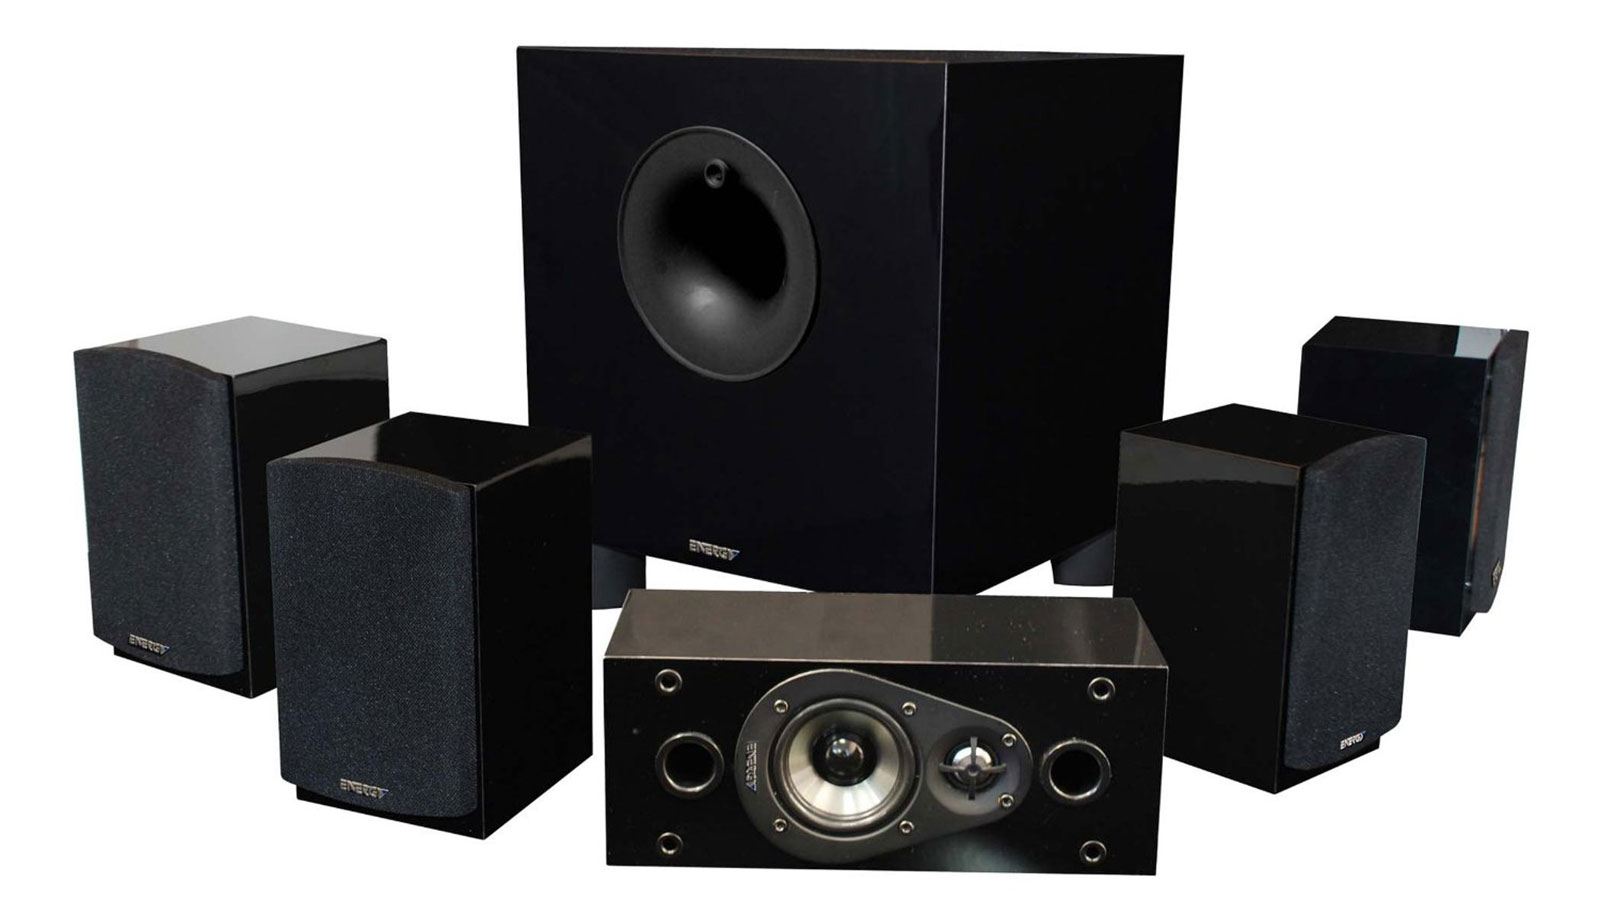 Energy 5.1 Take Classic Home Theater System  | GIFTS FOR MEN: THE | BEST GIFTS FOR TECHIES